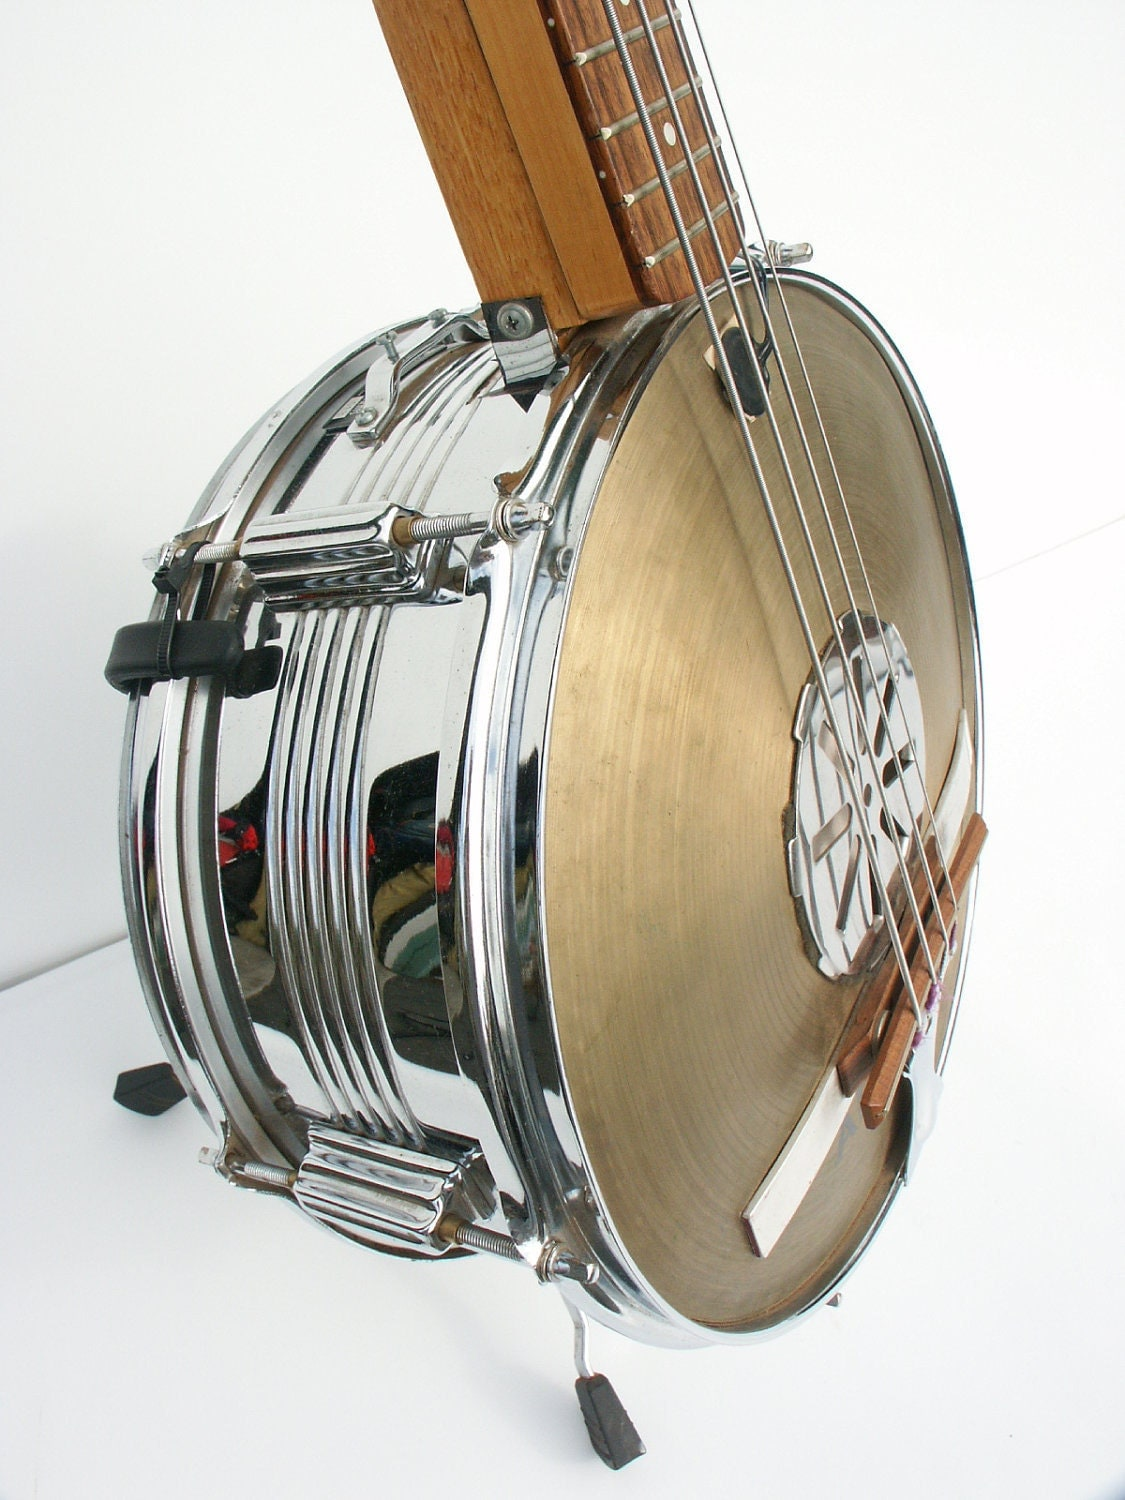 Standup snare drum bass from Etsy